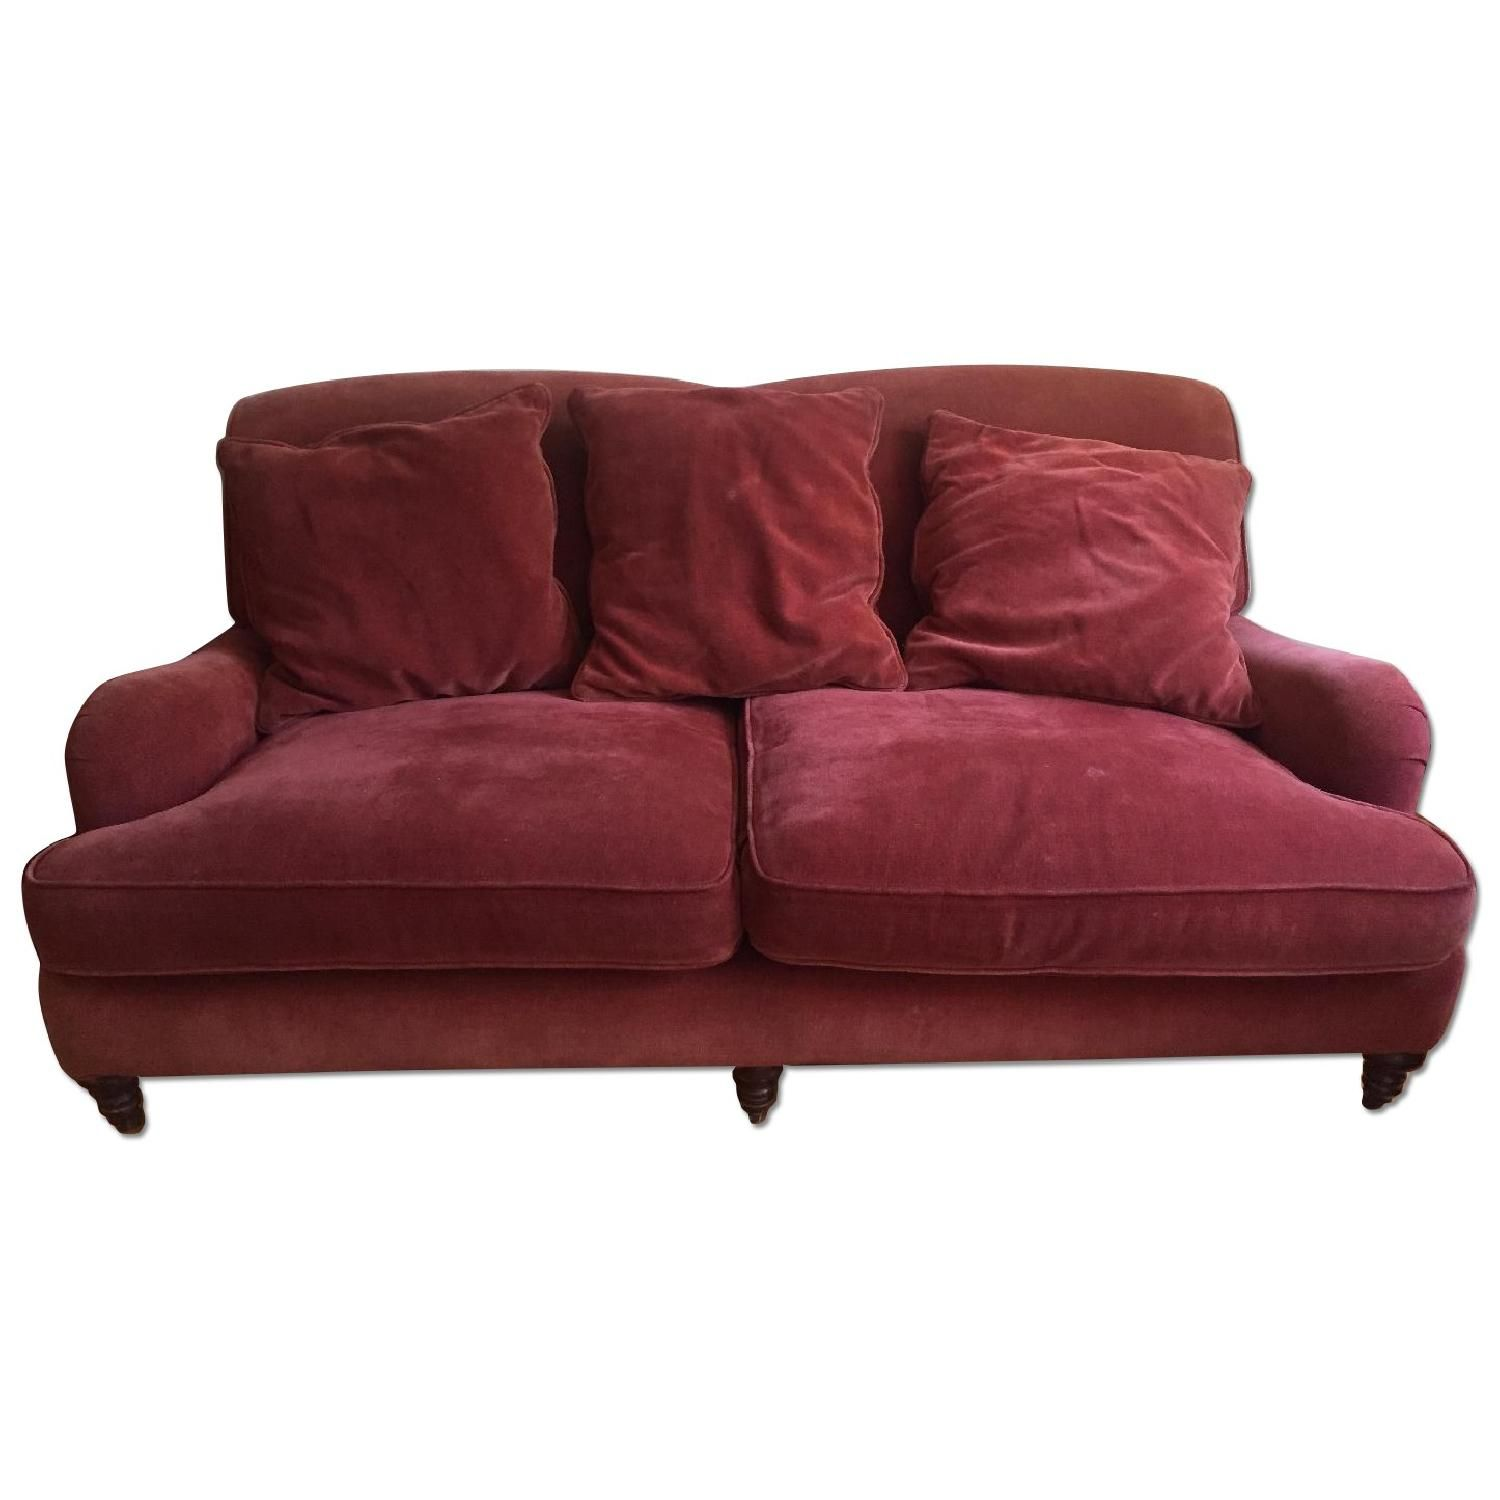 Lee Industries English Roll Arm Sofa Style Profile The